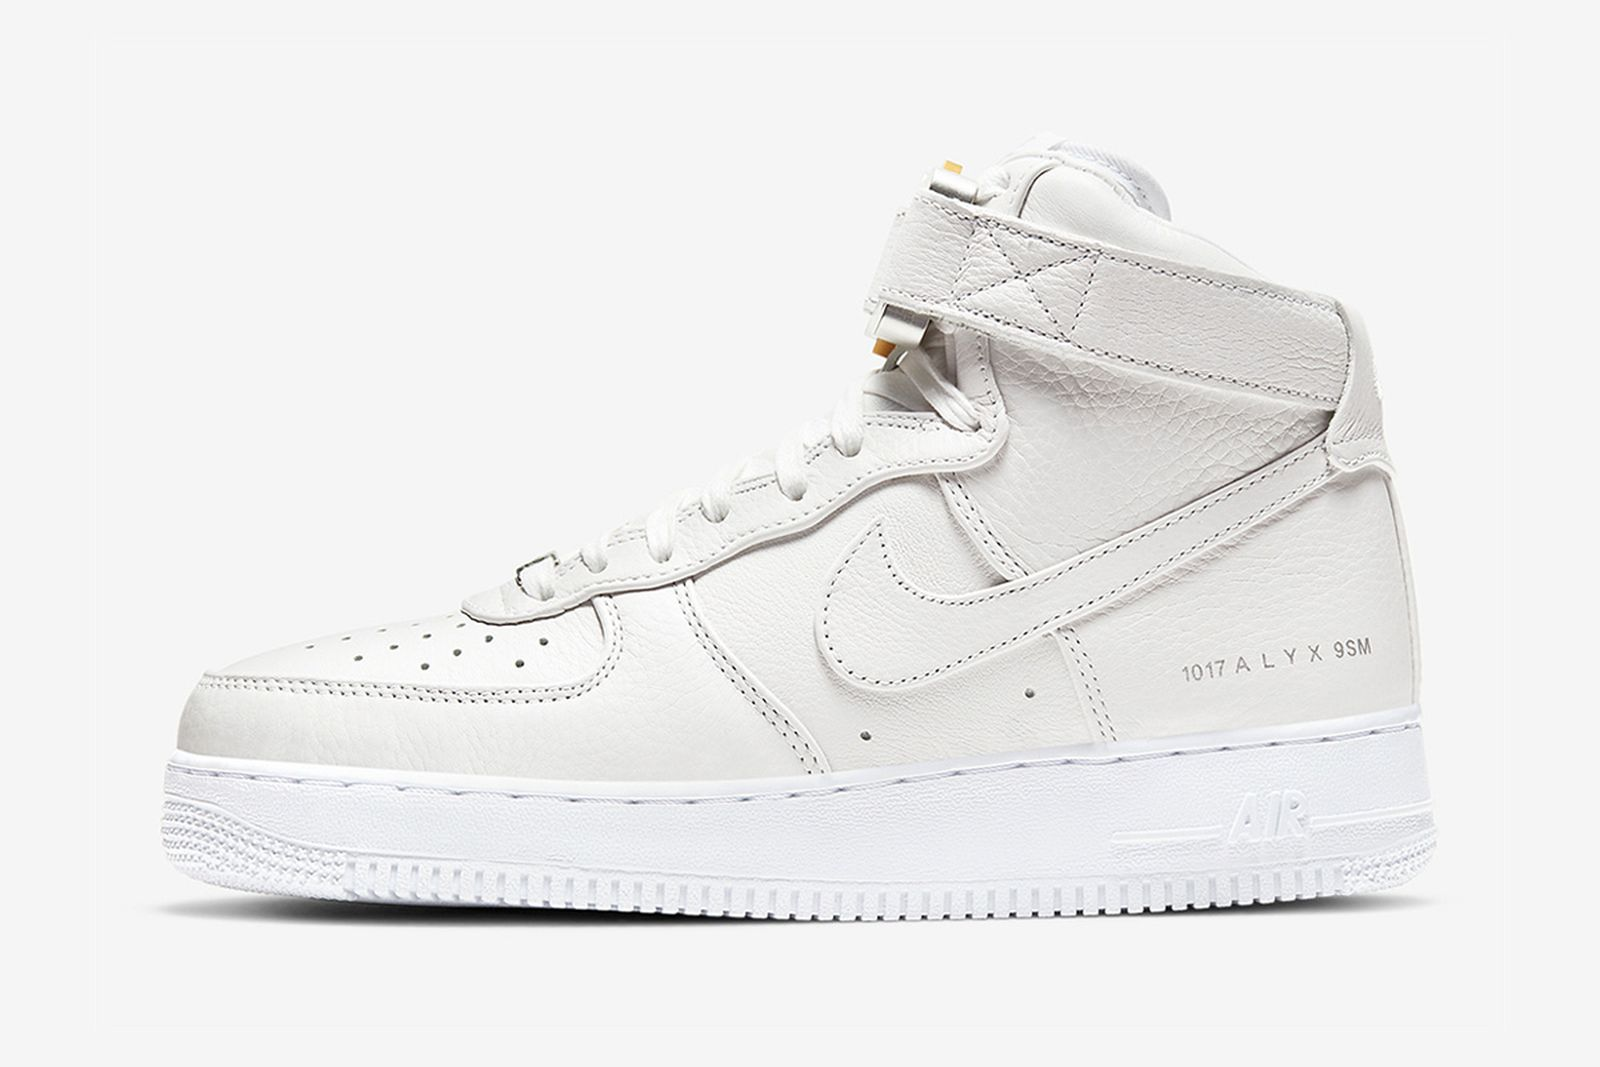 1017-alyx-9sm-nike-air-force-1-high-white-release-date-price-08